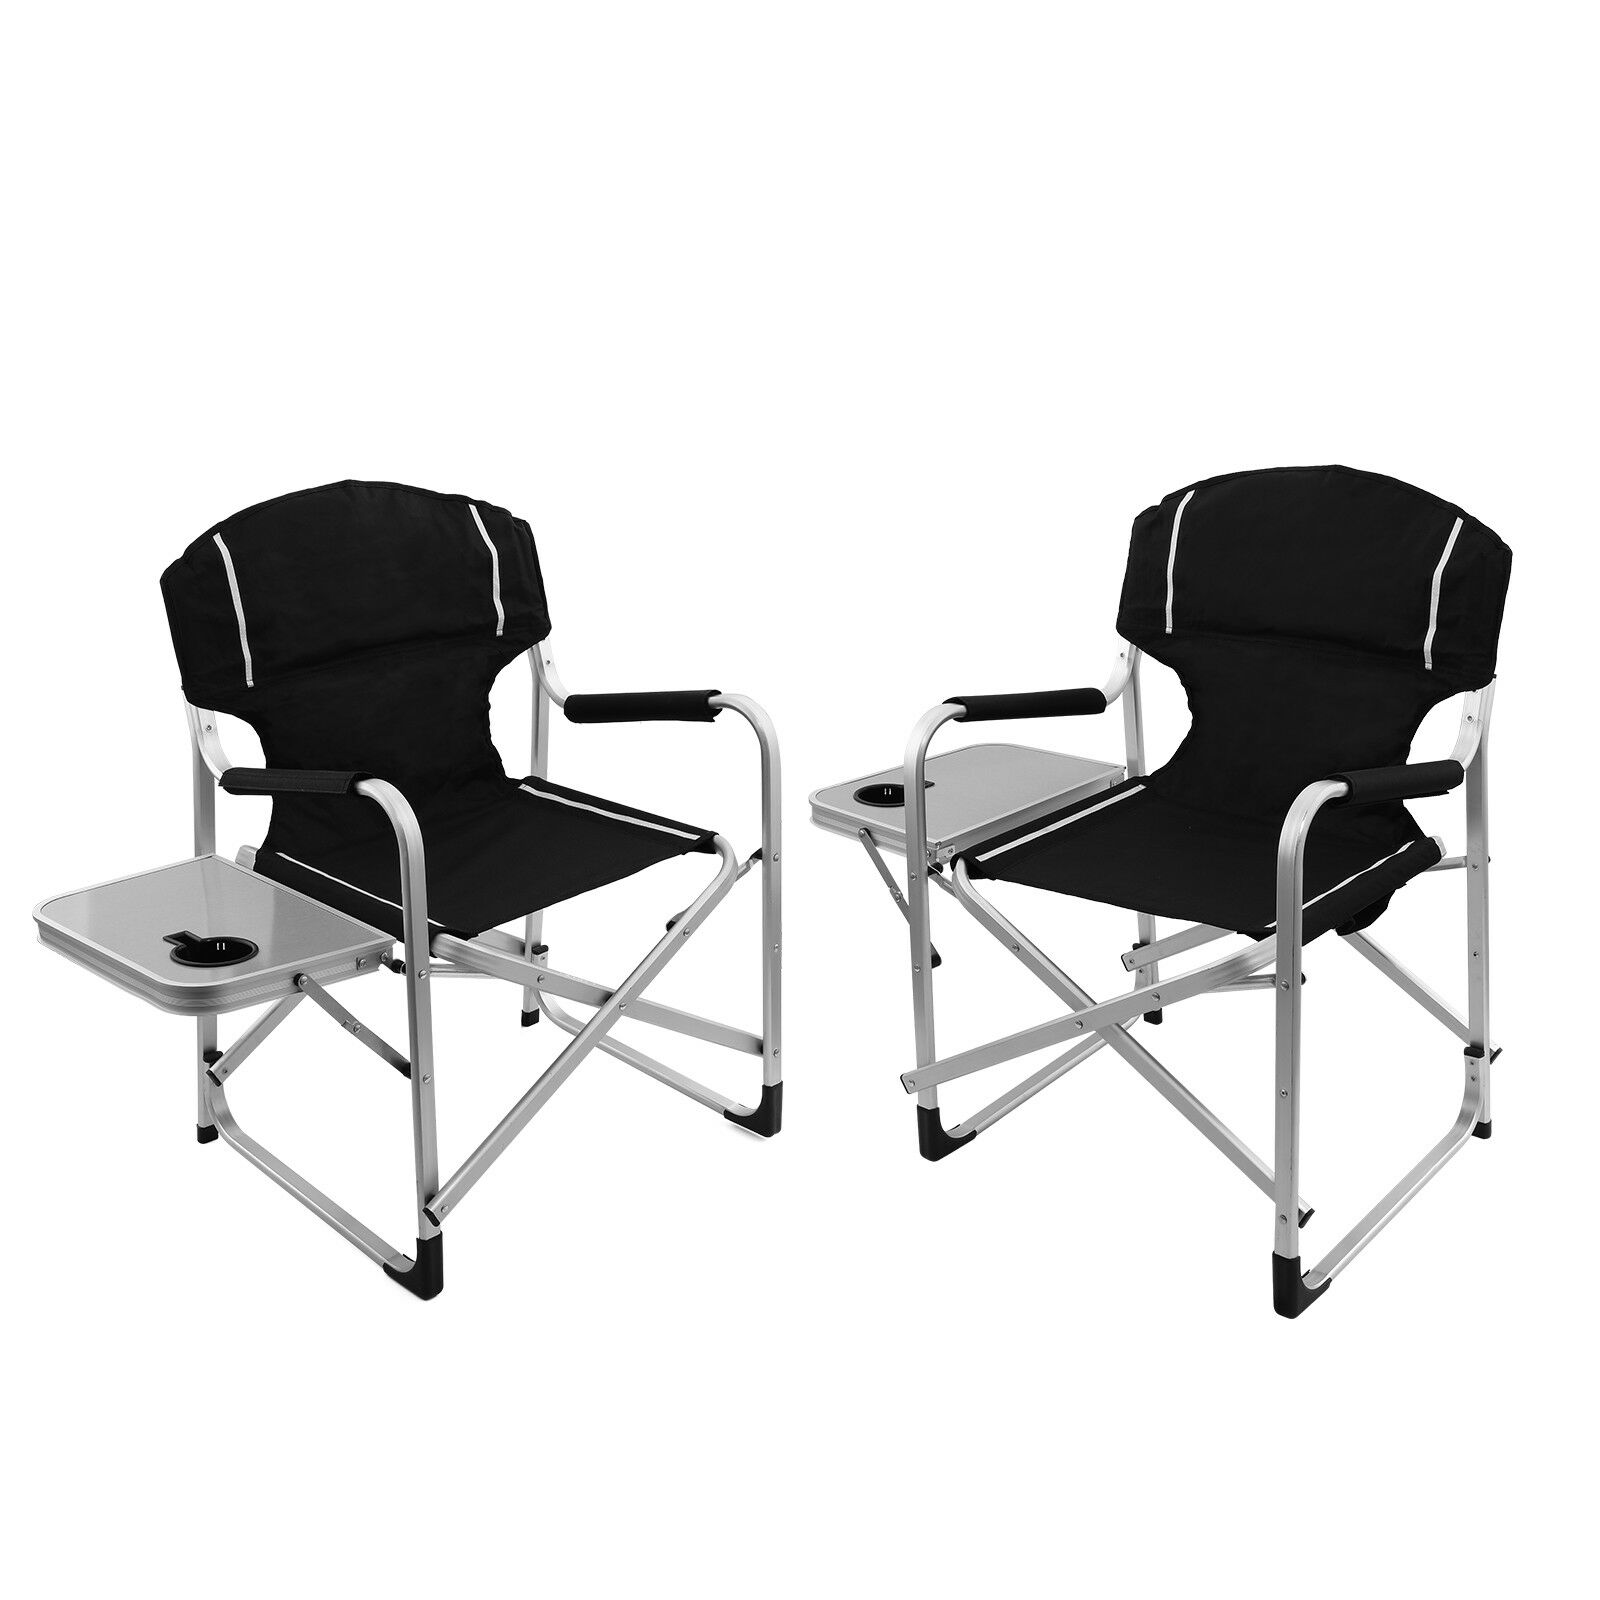 Details About 2pc Folding Director S Chair Aluminum Camping Lightweight Chair With Side Table